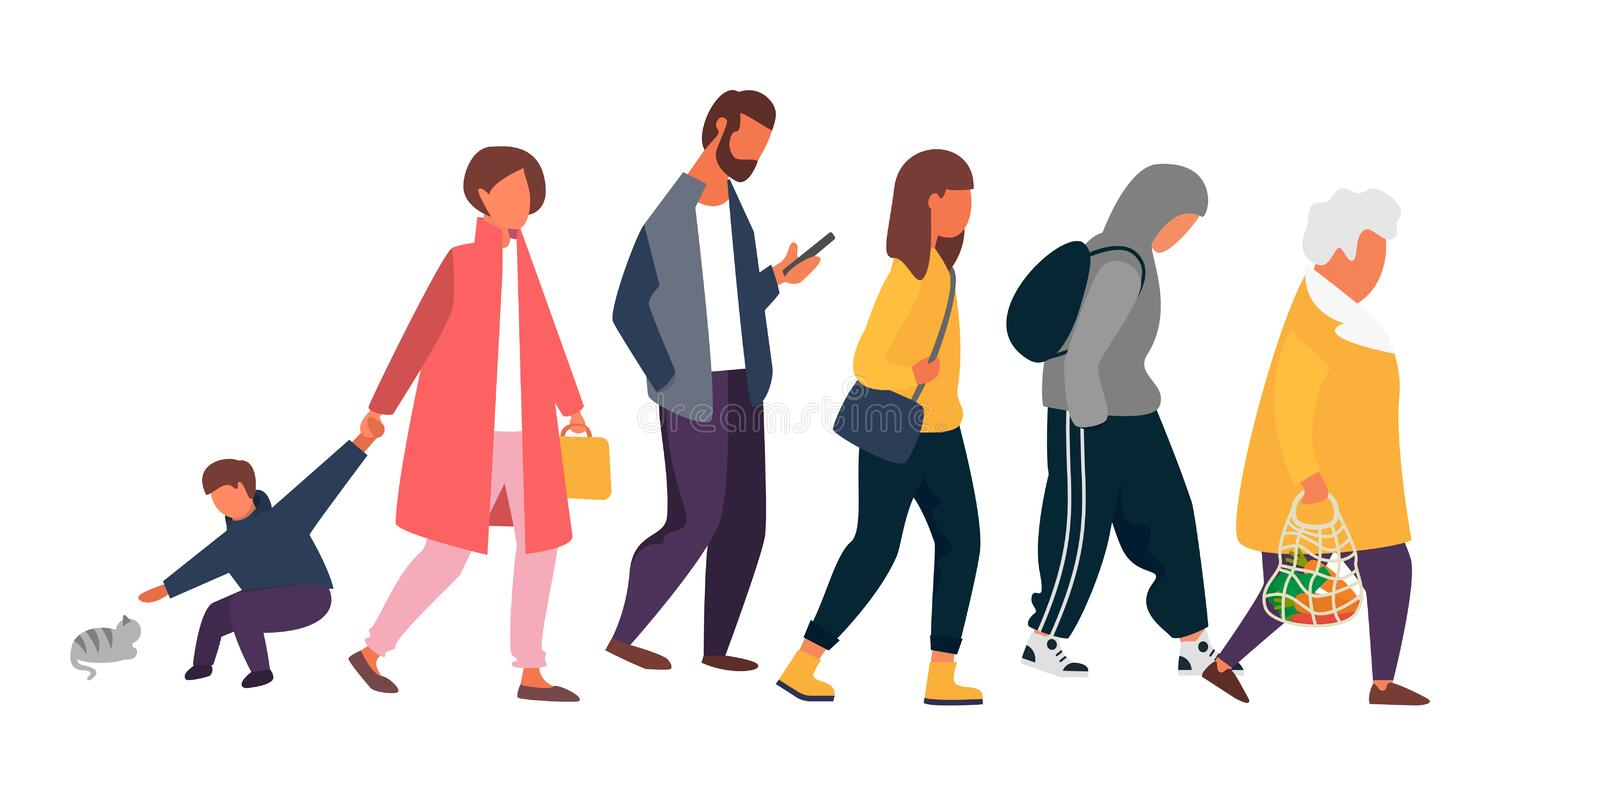 Crowd of people walking in autumn clothes. Vector illustration. Man, woman and kid characters. Crowd of people different ages walking in autumn clothes. Vector vector illustration